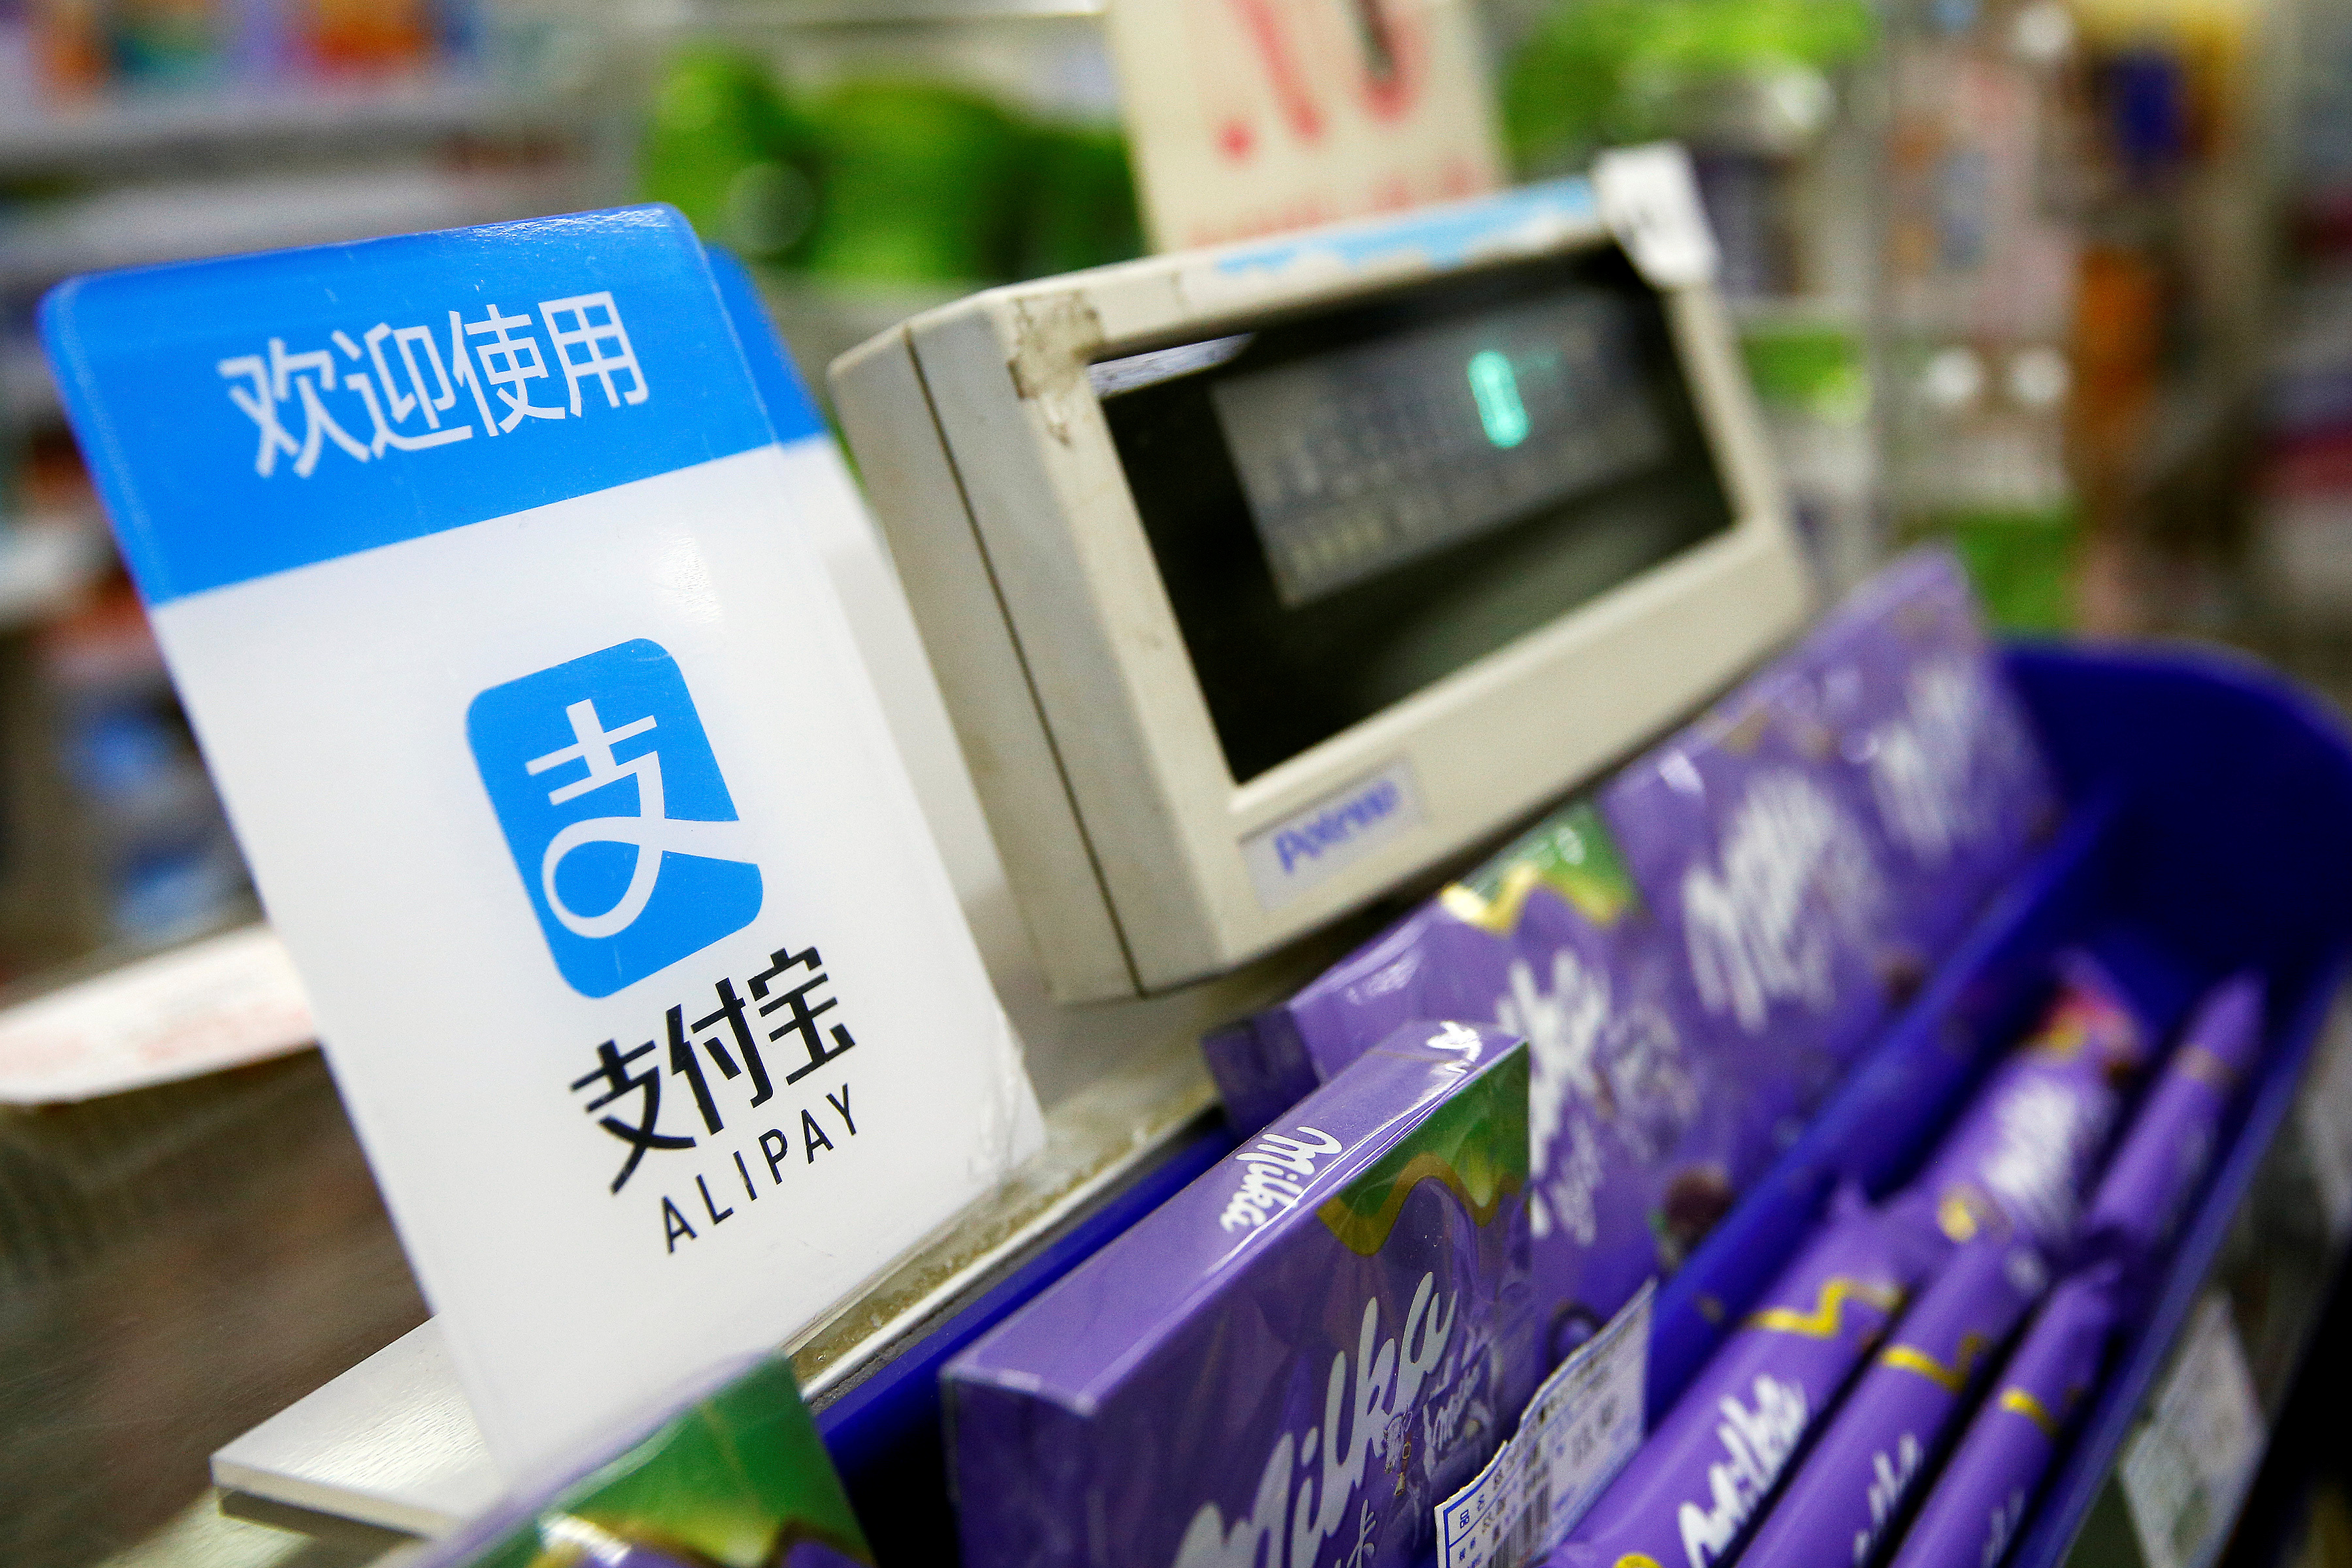 Alipay loans hit 300bn yuan as youth turn to credit